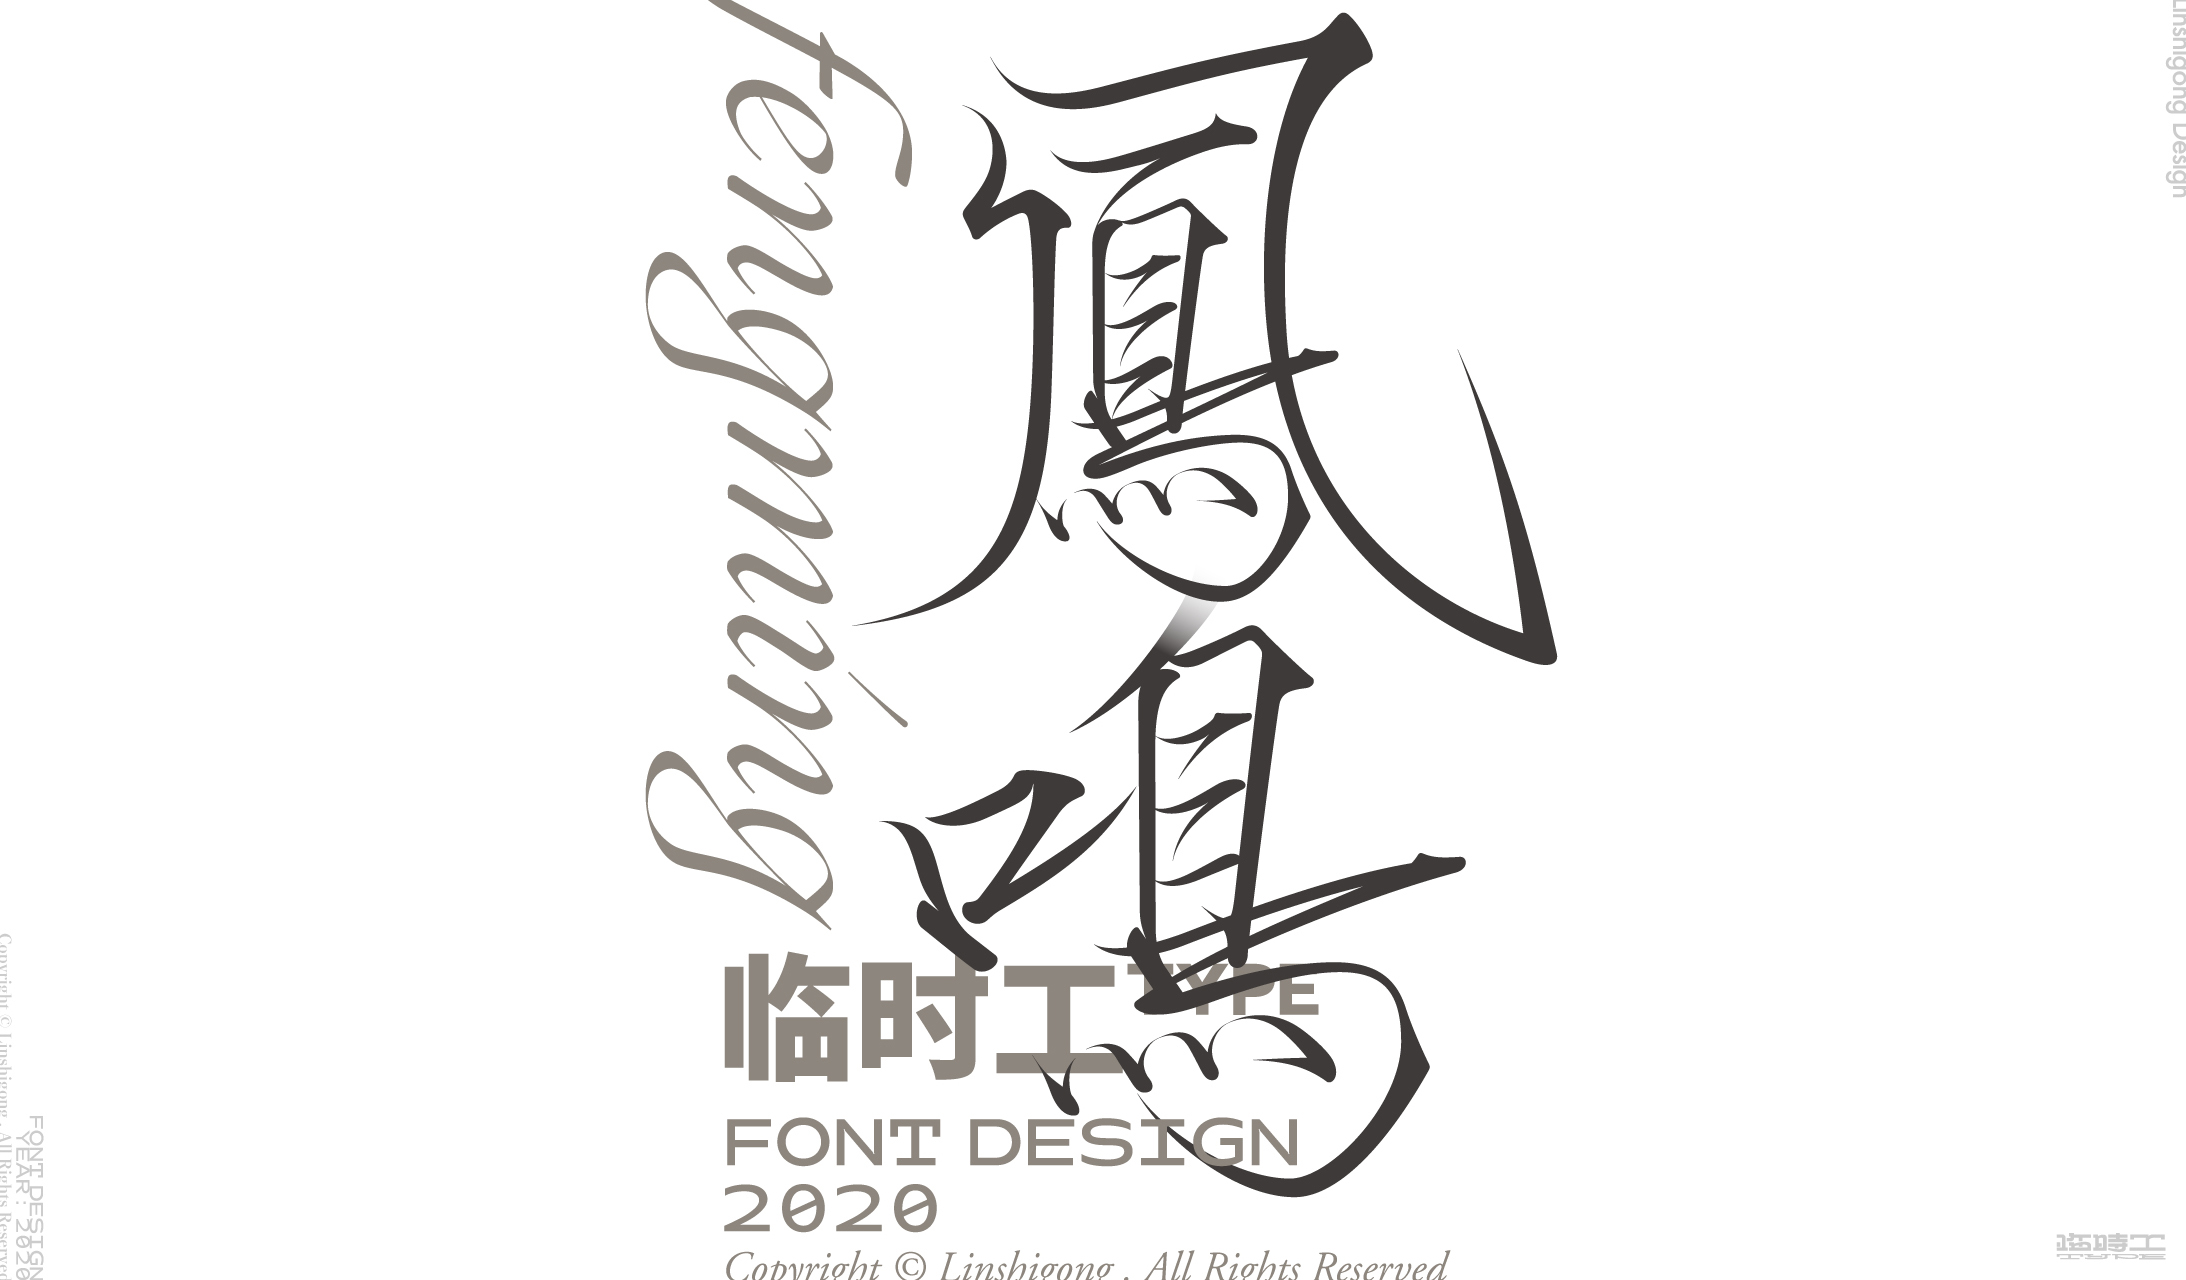 Sharp and chic font design